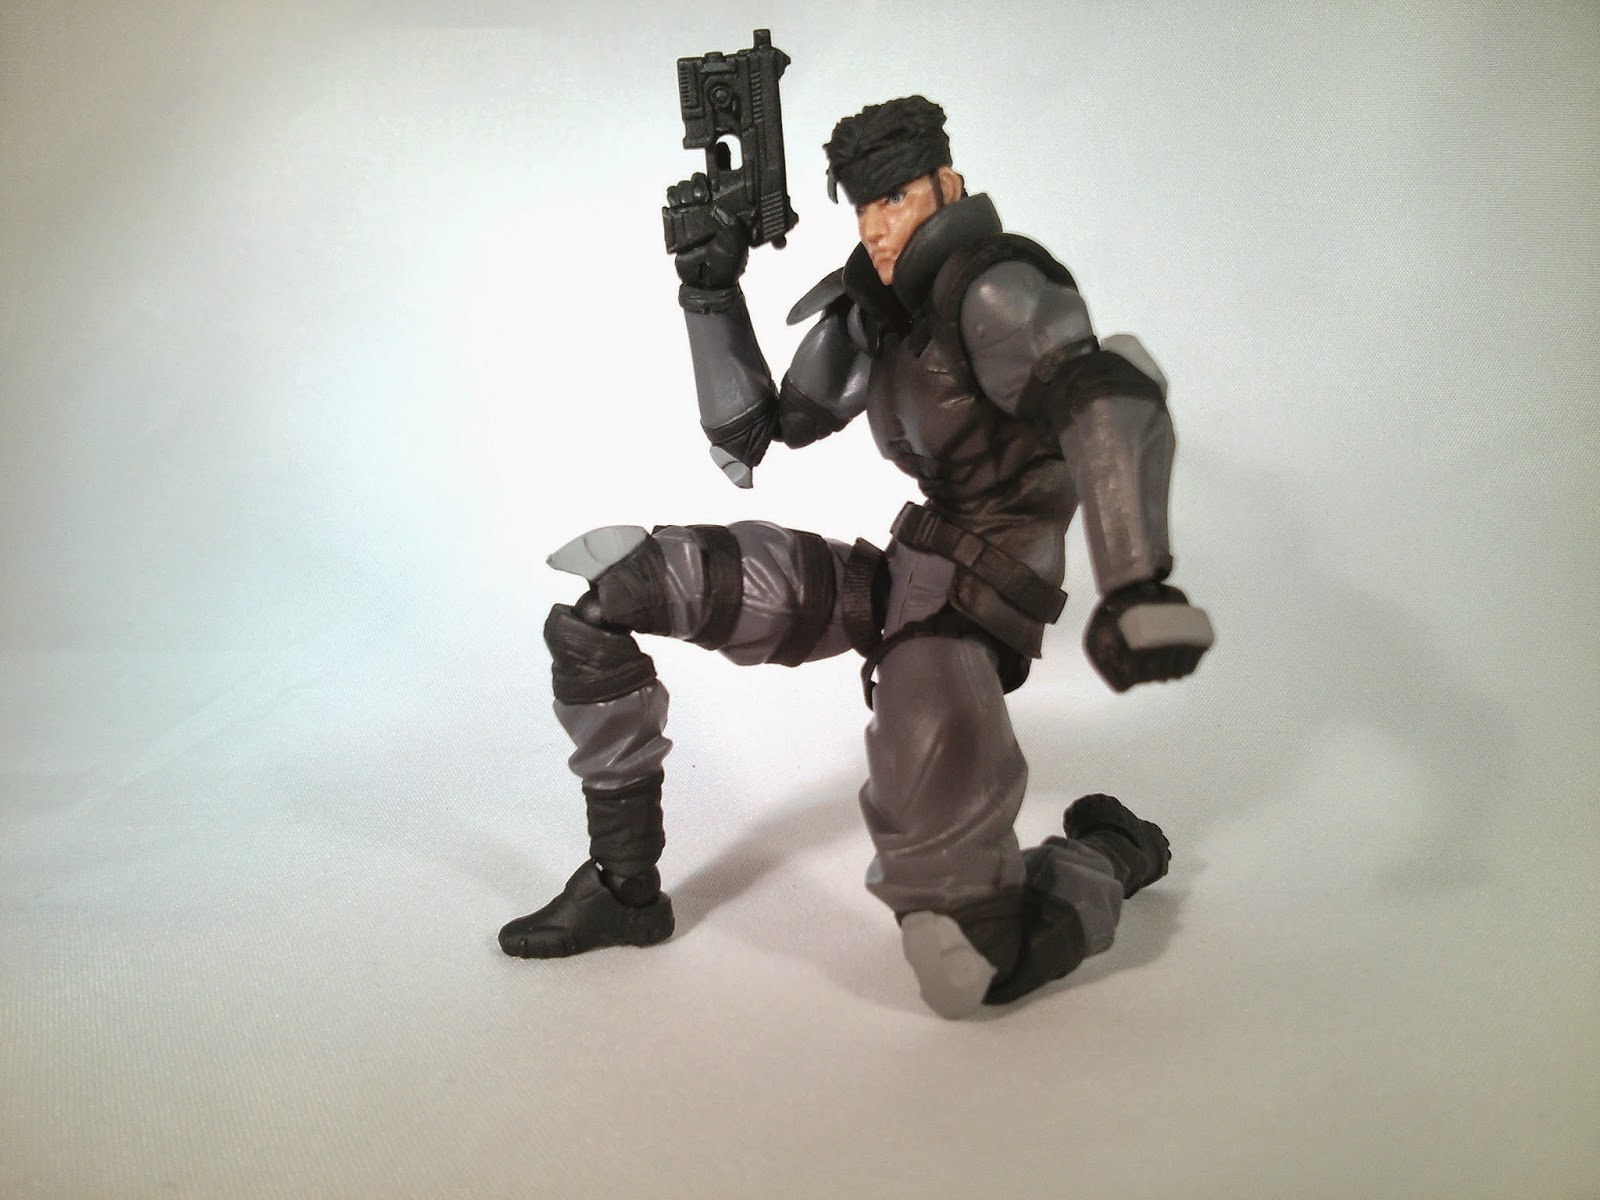 snake with pistol